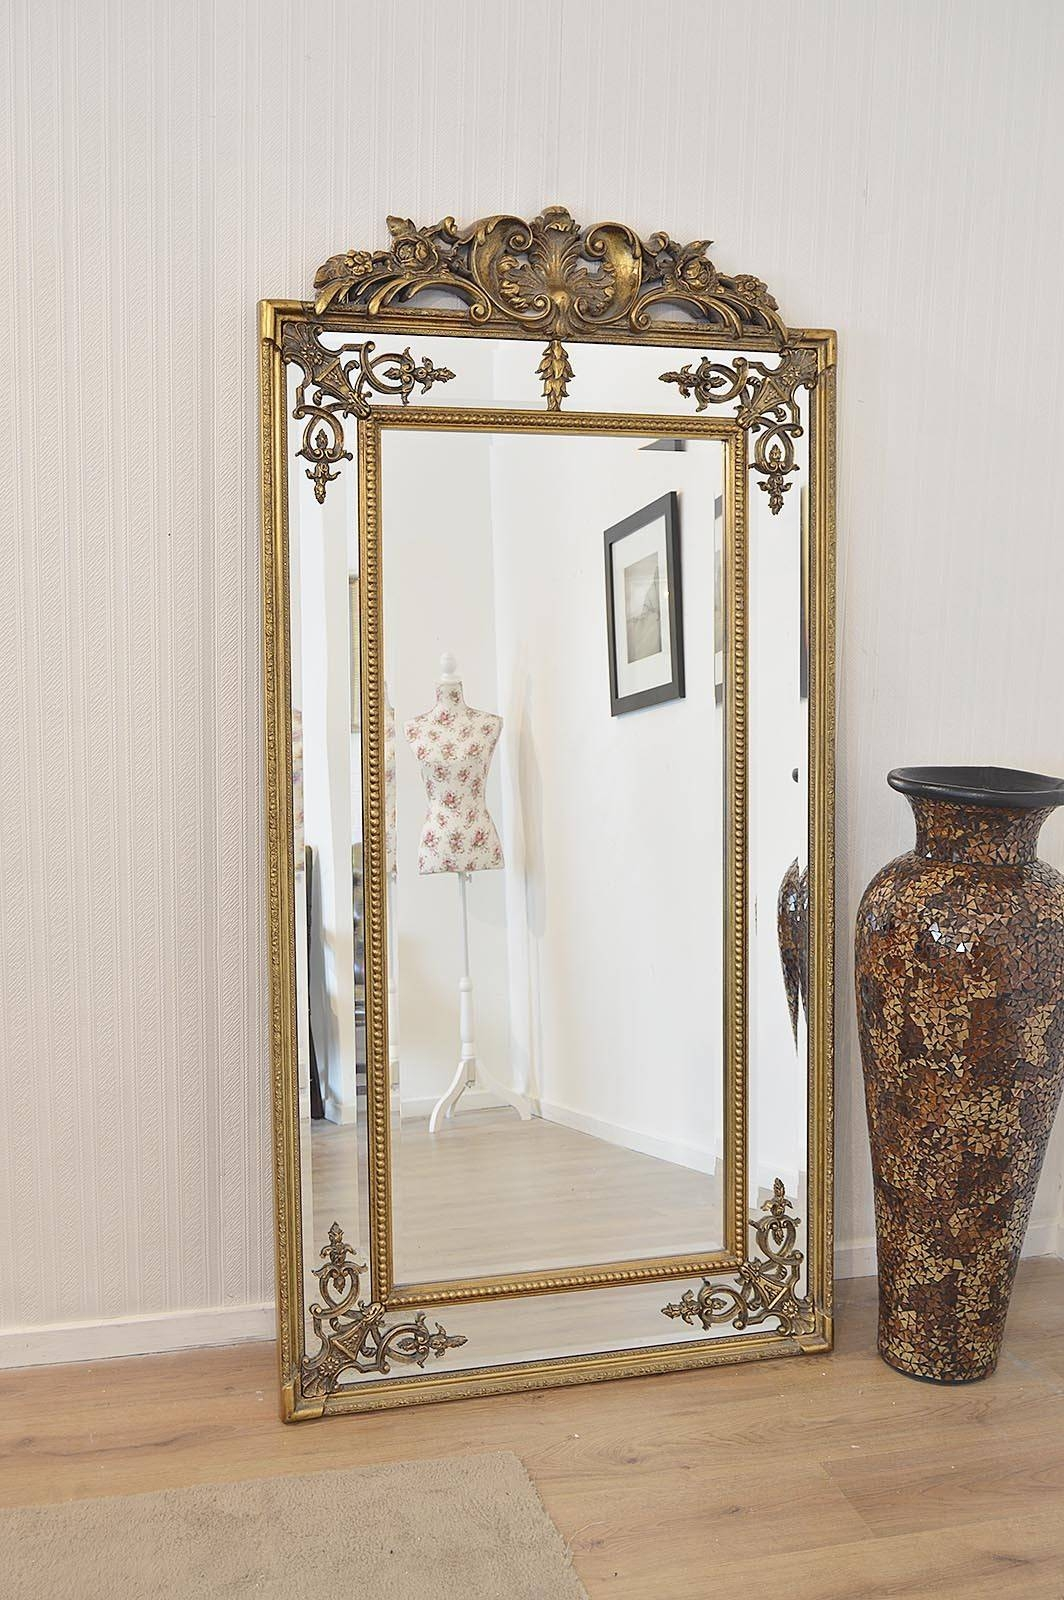 Ornate Mirrors For Sale 118 Enchanting Ideas With Inside Ornate Standing Mirrors (View 8 of 15)